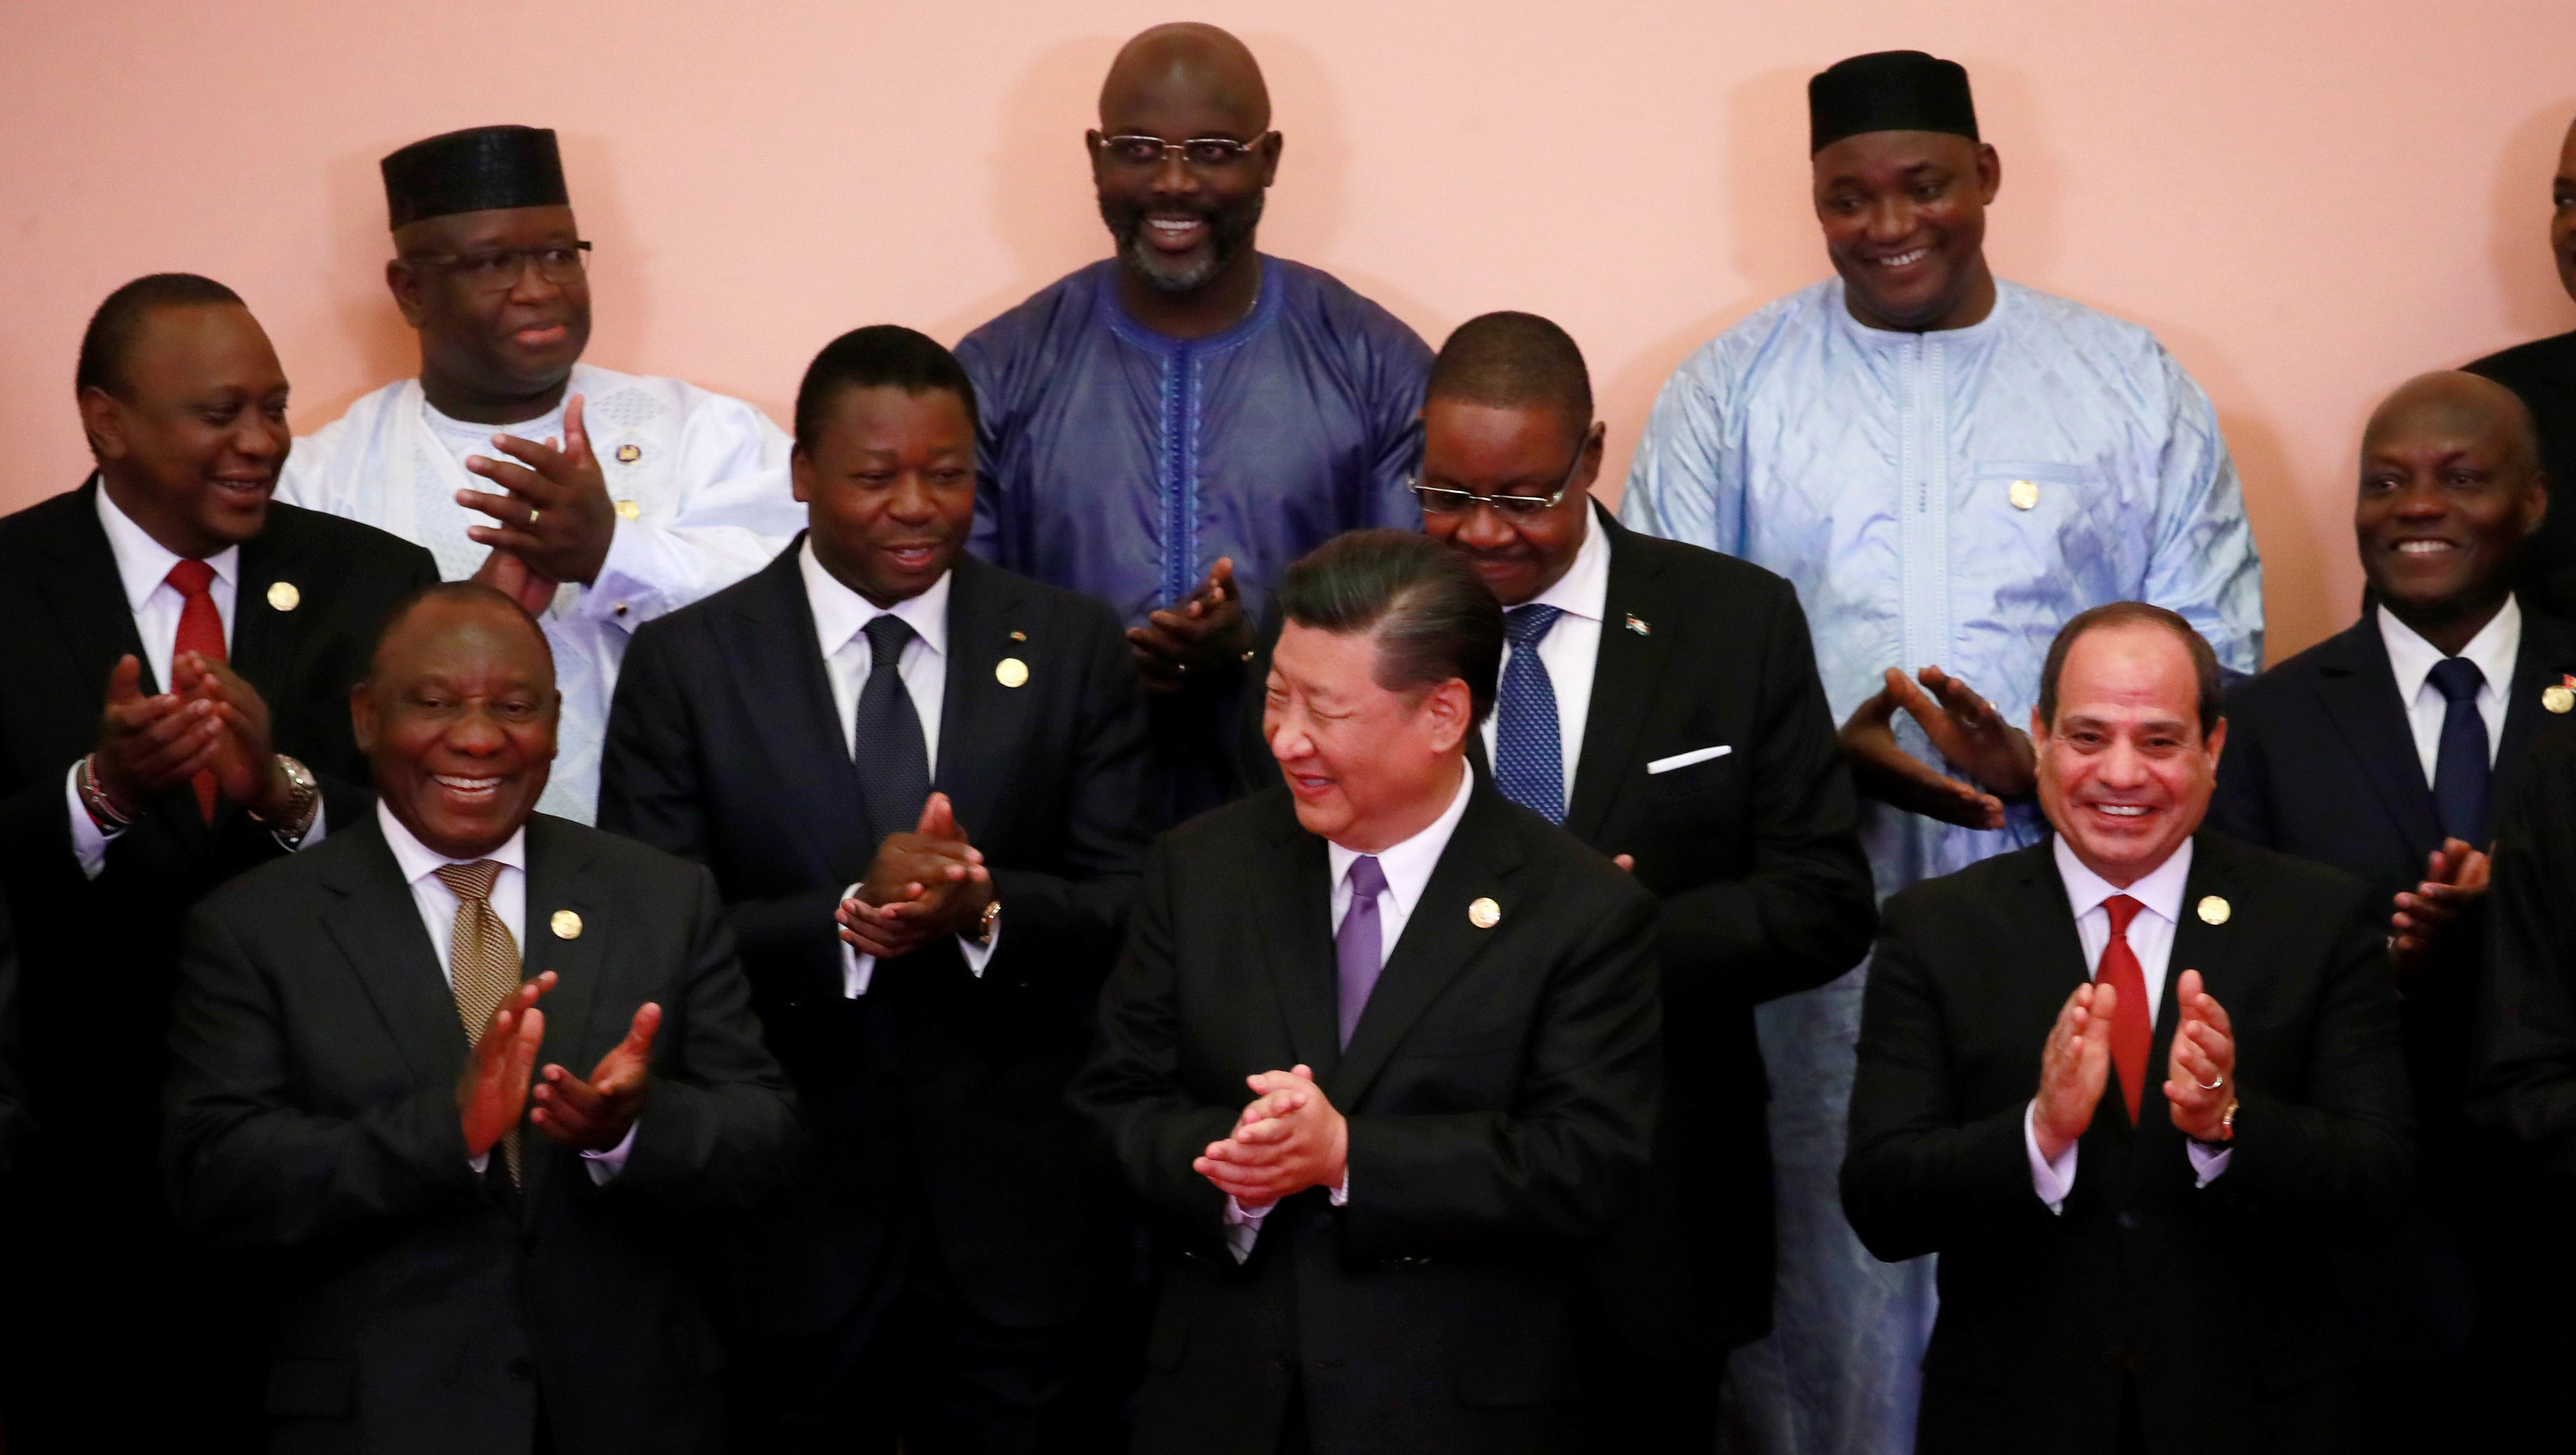 Chinese President Xi Jinping (front C), South African President Cyril Ramaphosa (front 3-L), Egyptian President Abdel Fattah al-Sisi (front L), KenyaÕs President Uhuru Kenyatta (2nd row L), TogoÕs President Faure GnassingbŽ (2nd row 2-L), Malawi's President Arthur Peter Mutharika (2nd row C), Guinea-Bissau's President Jose Mario Vaz (2nd row R), Sierra Leone President Julius Maada Bio (last row L), Liberian President George Weah (last row C) and other African leadersclap during a group photo session during the Forum on China-Africa Cooperation (FOCAC) 2018 Beijing Summit in Beijing, China, September 3, 2018. How Hwee Young/POOL Via REUTERS - RC1D22627100